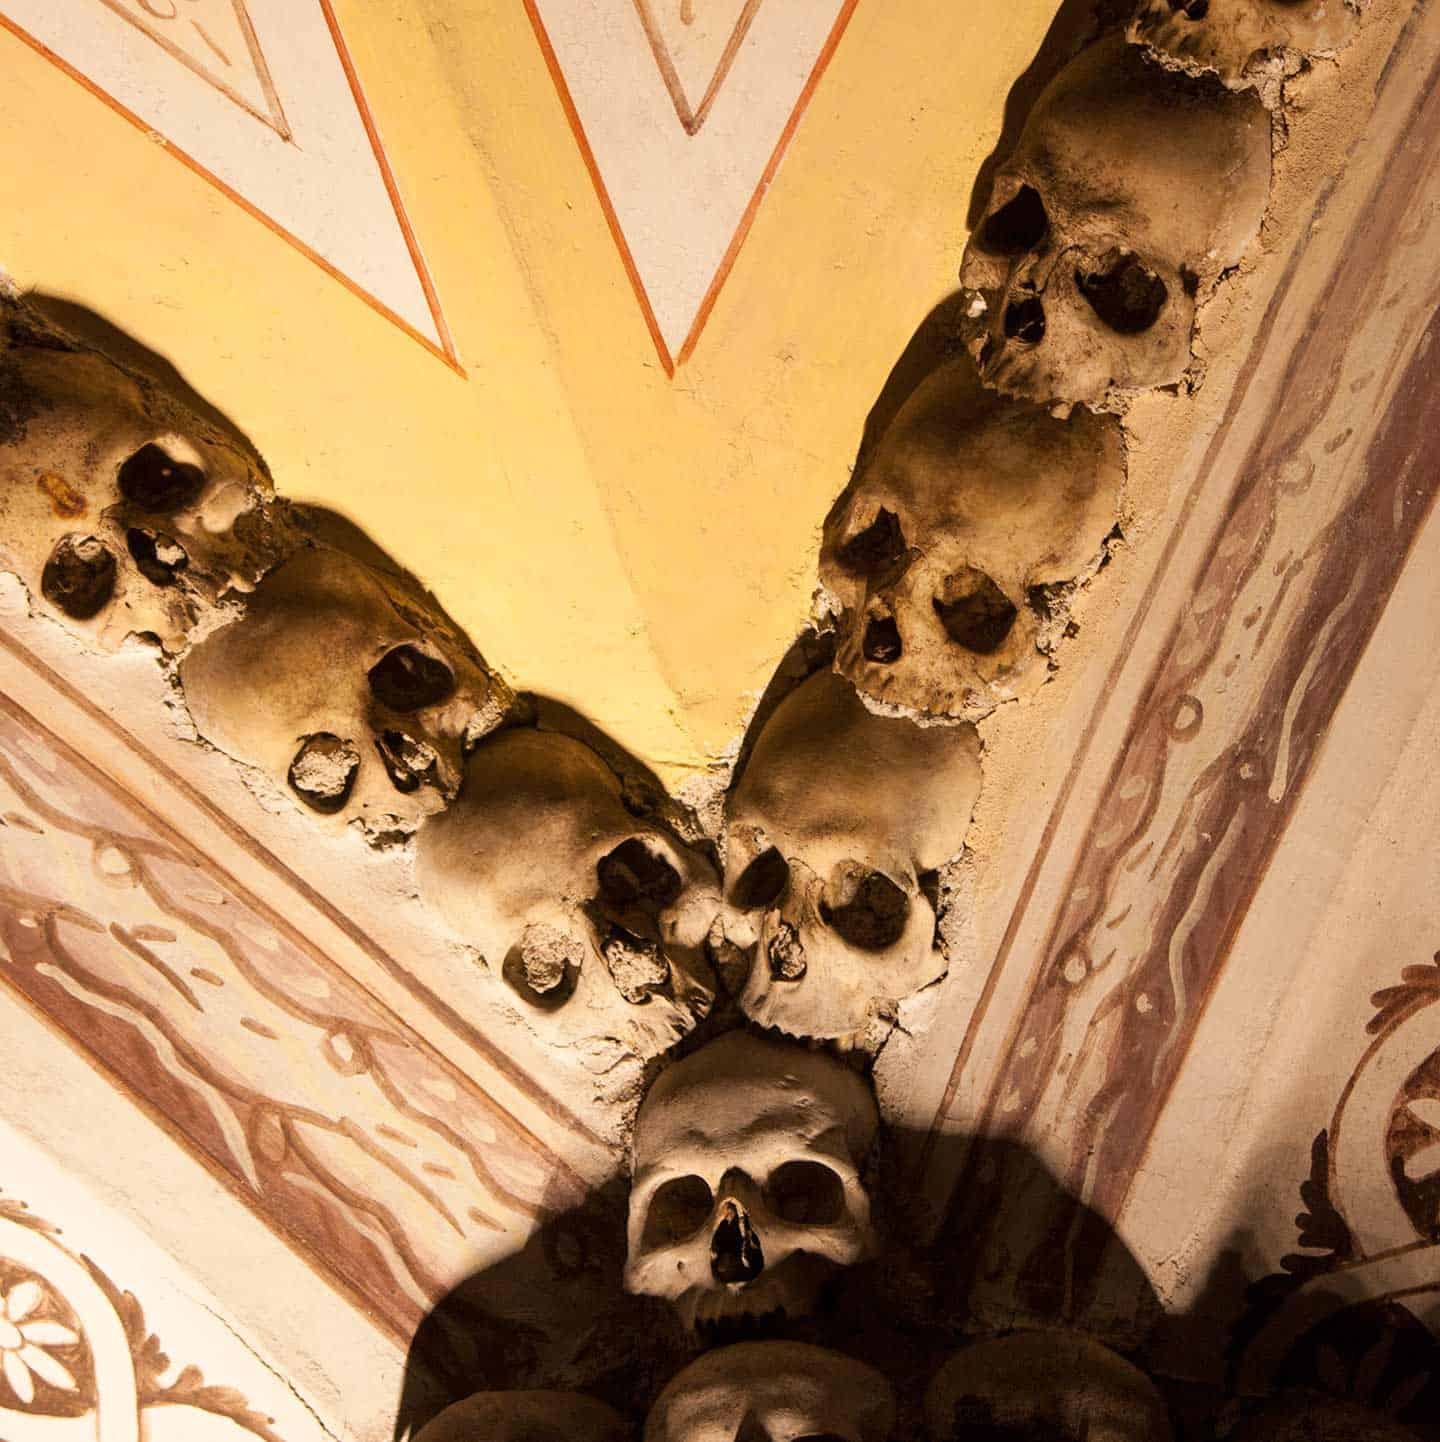 Image of seven skulls used for decoration on the ceiling of the chapel